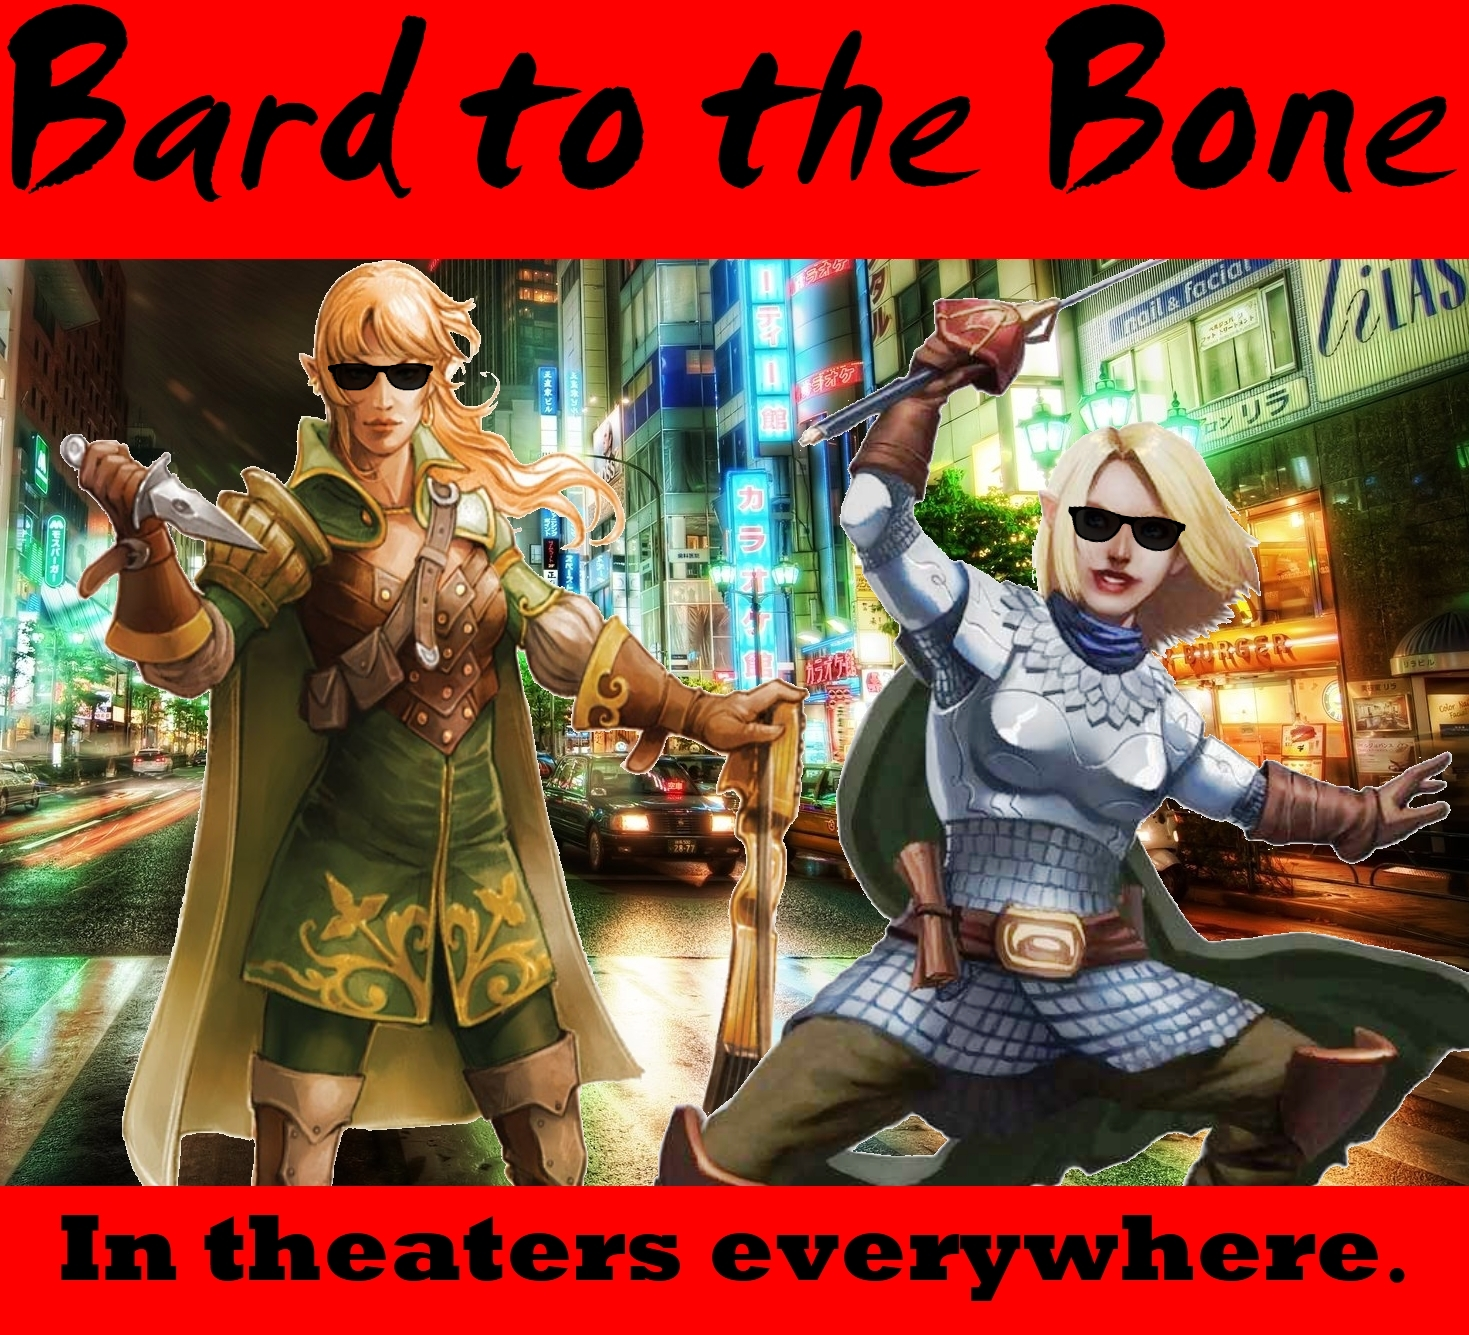 Bard_To_the_Bone_2.jpg